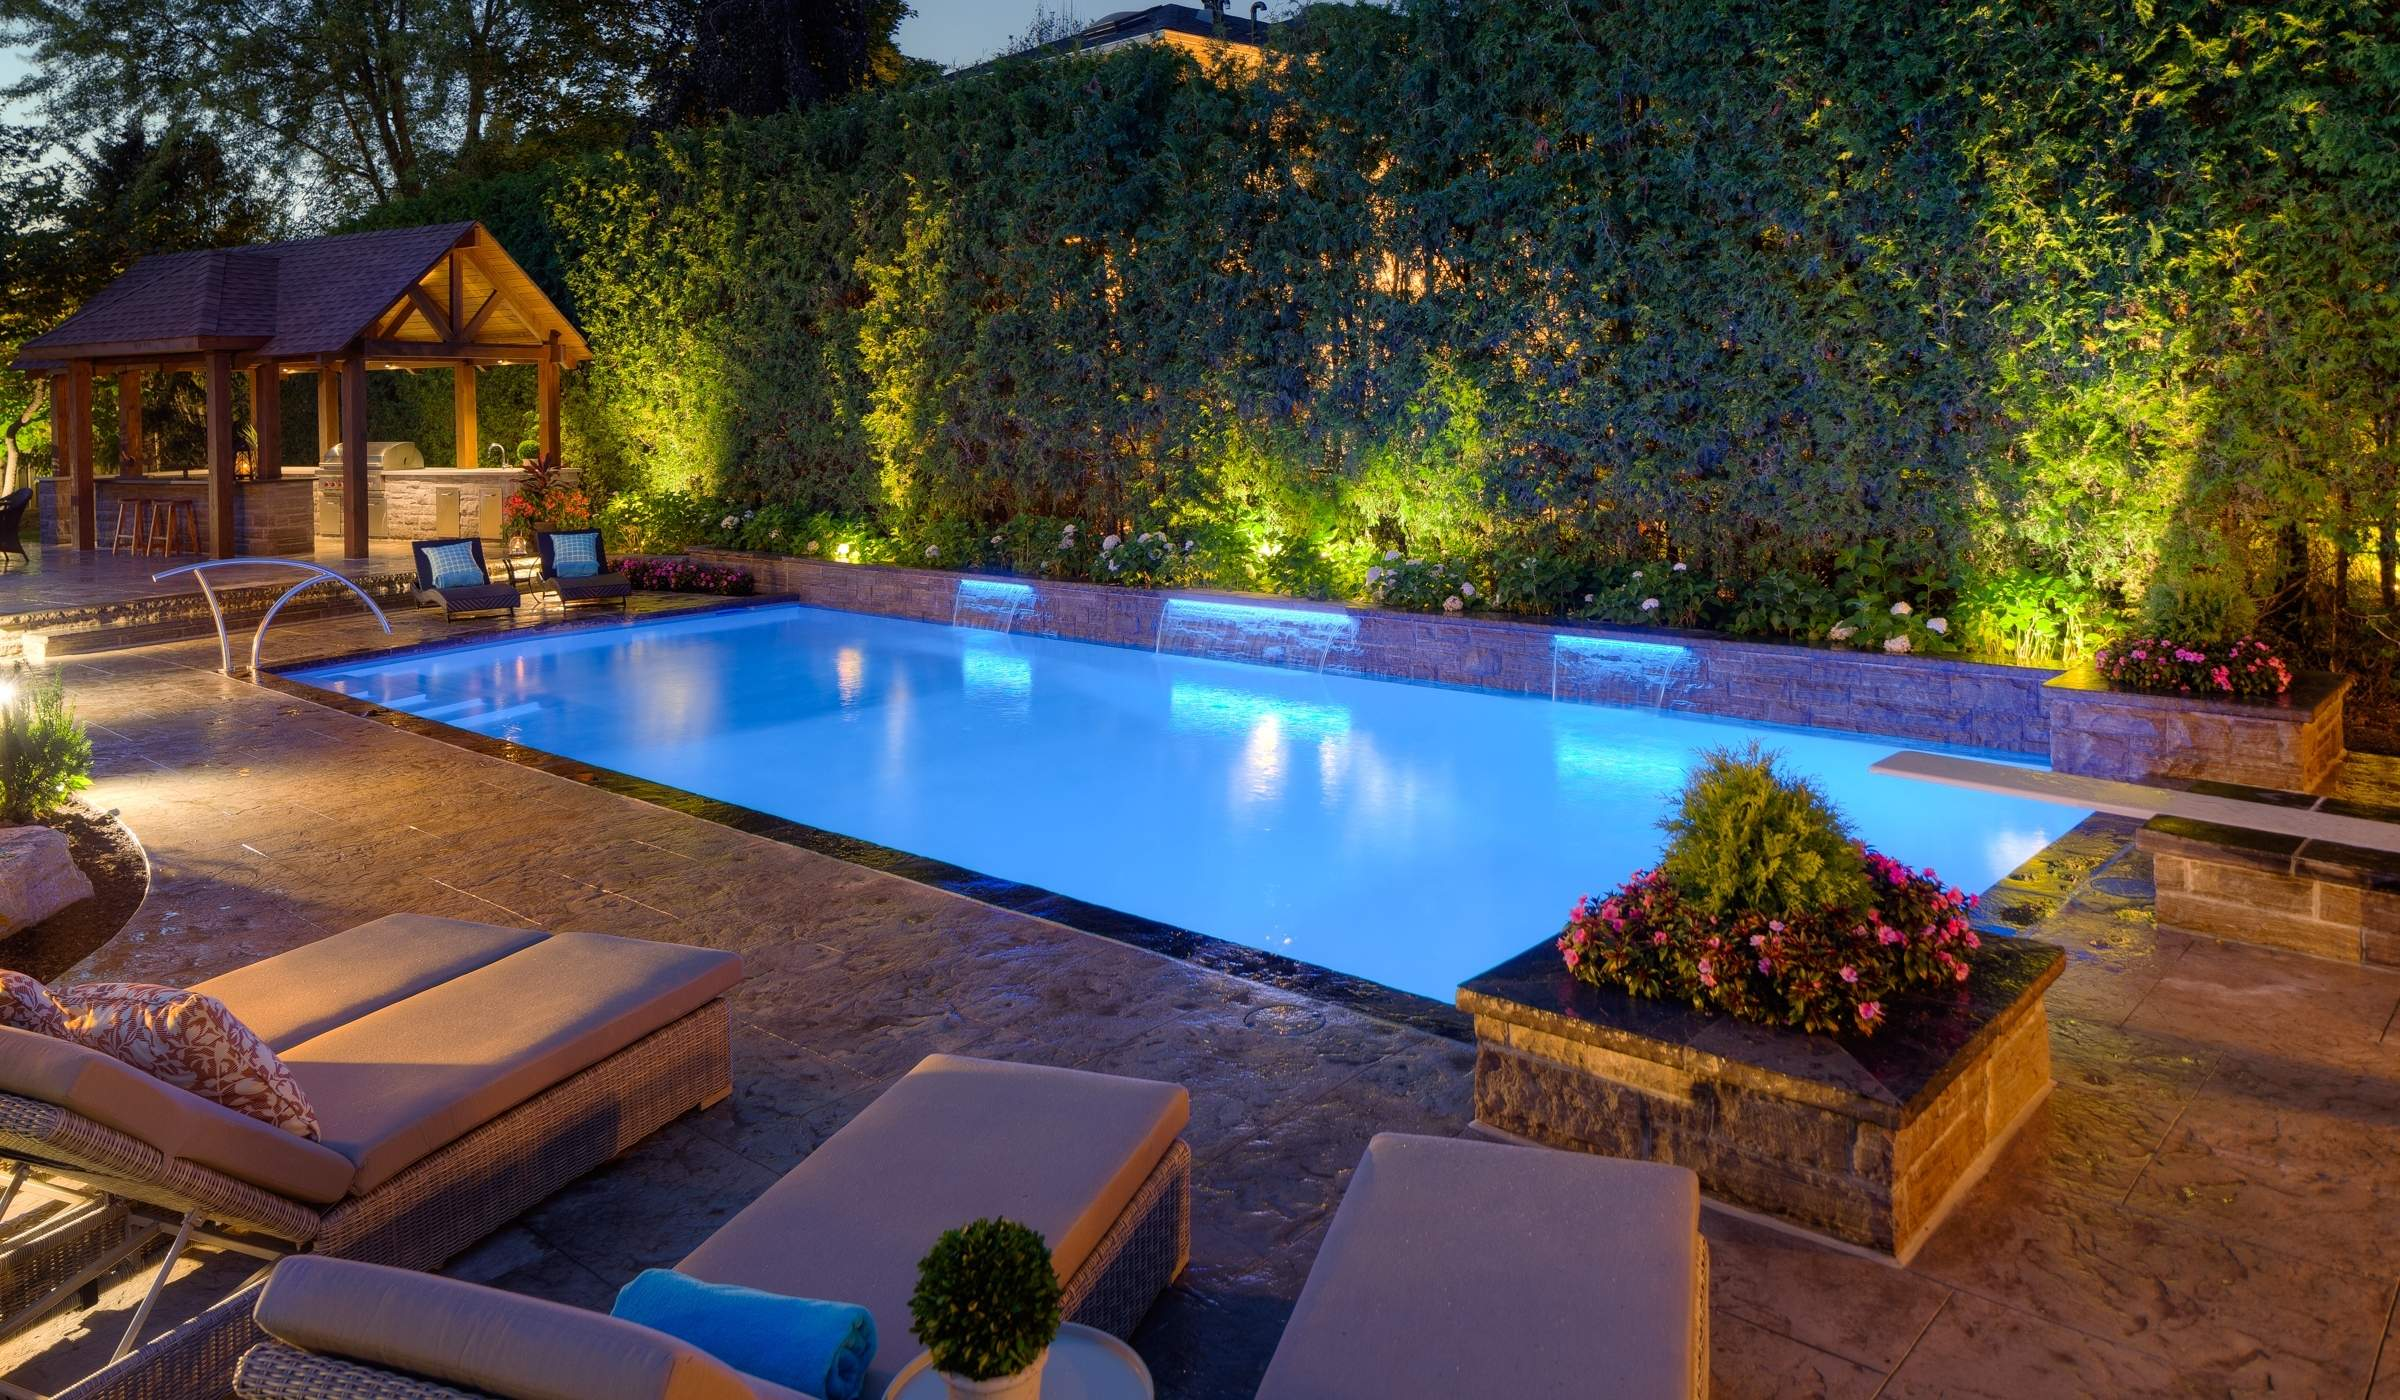 Landscape & Pool Lighting : Betz Pools on Backyard Pool Landscape Designs id=60851